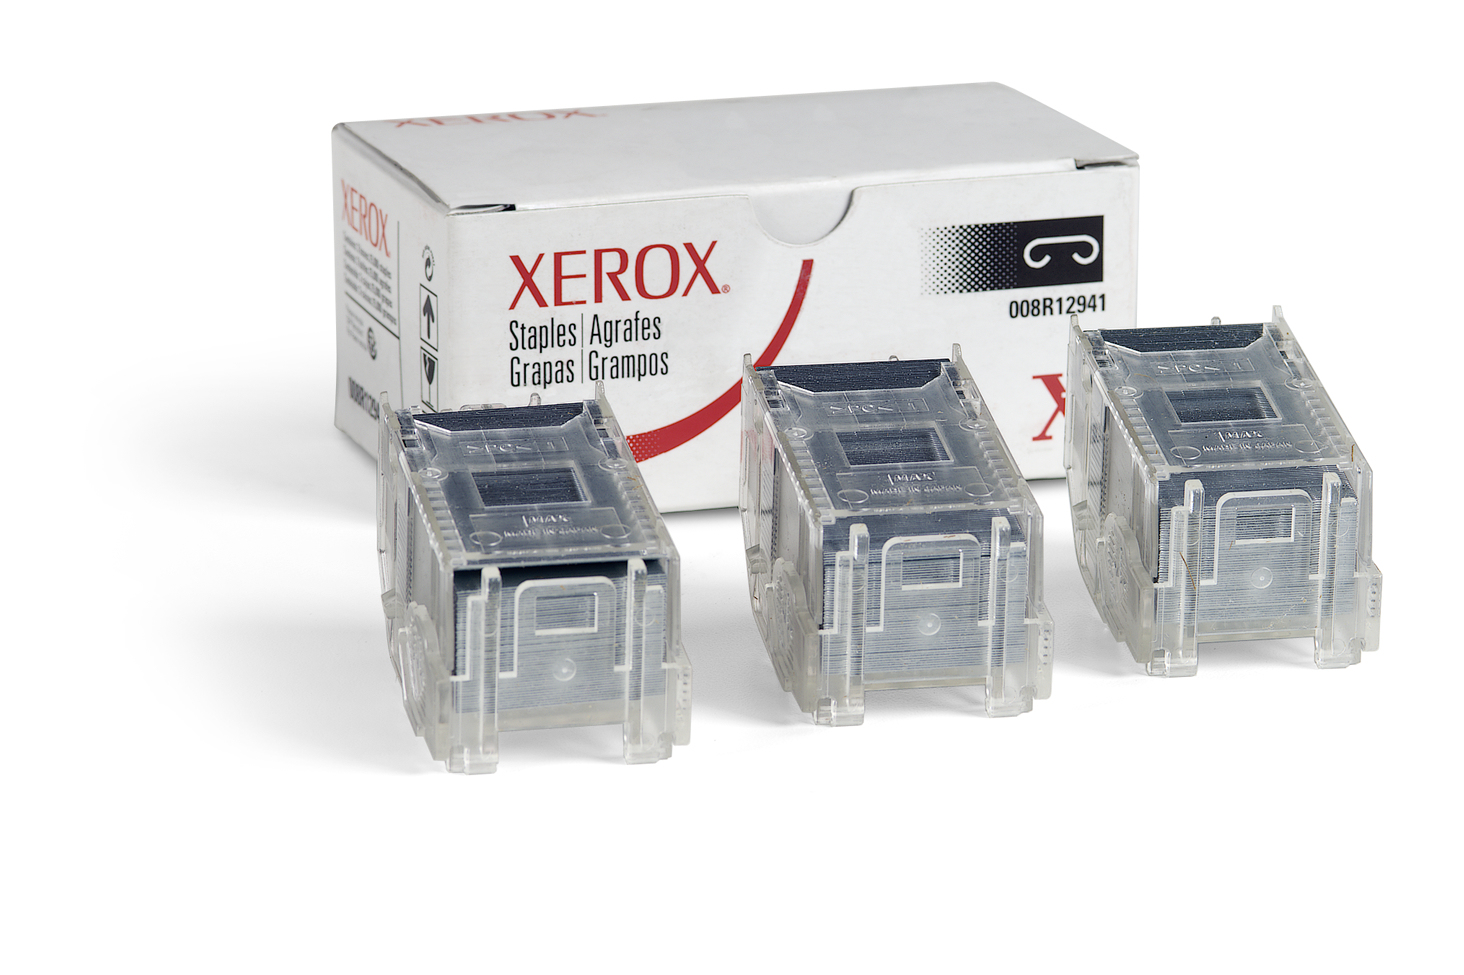 Xerox - Genuine Supplies         Staples Kit                         F/ Phaser 5500 & Wc4150             008r12941